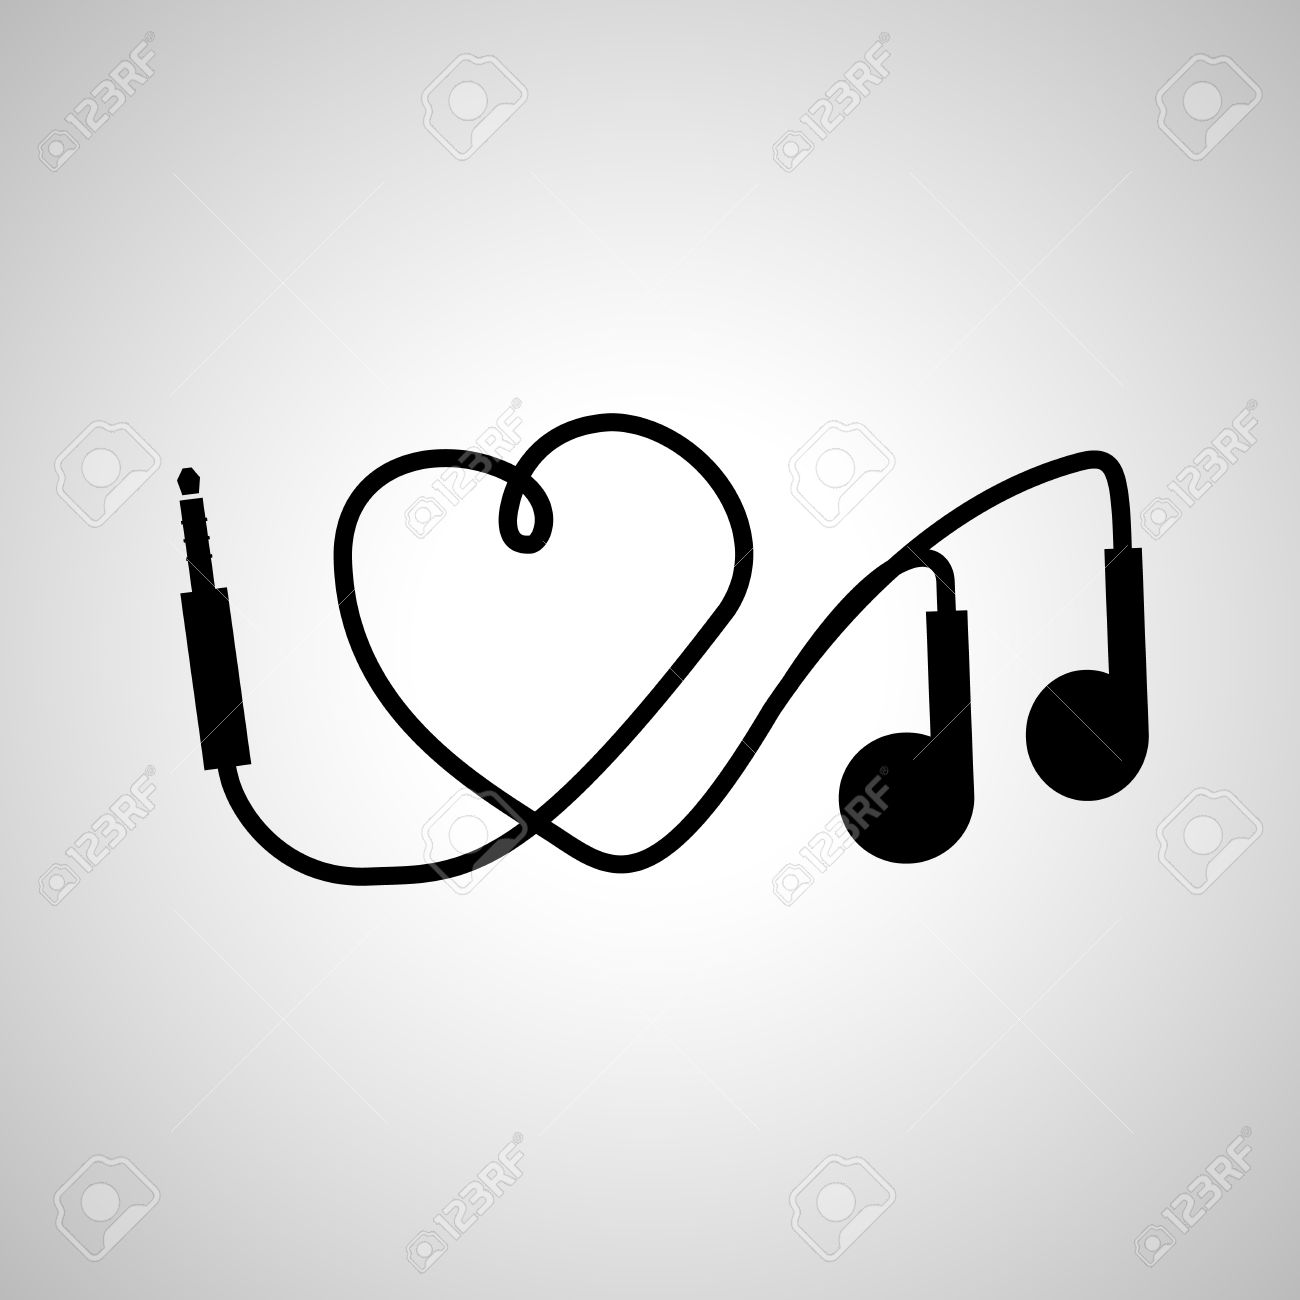 Drawn musician lover Palak more! Pinterest Pin and